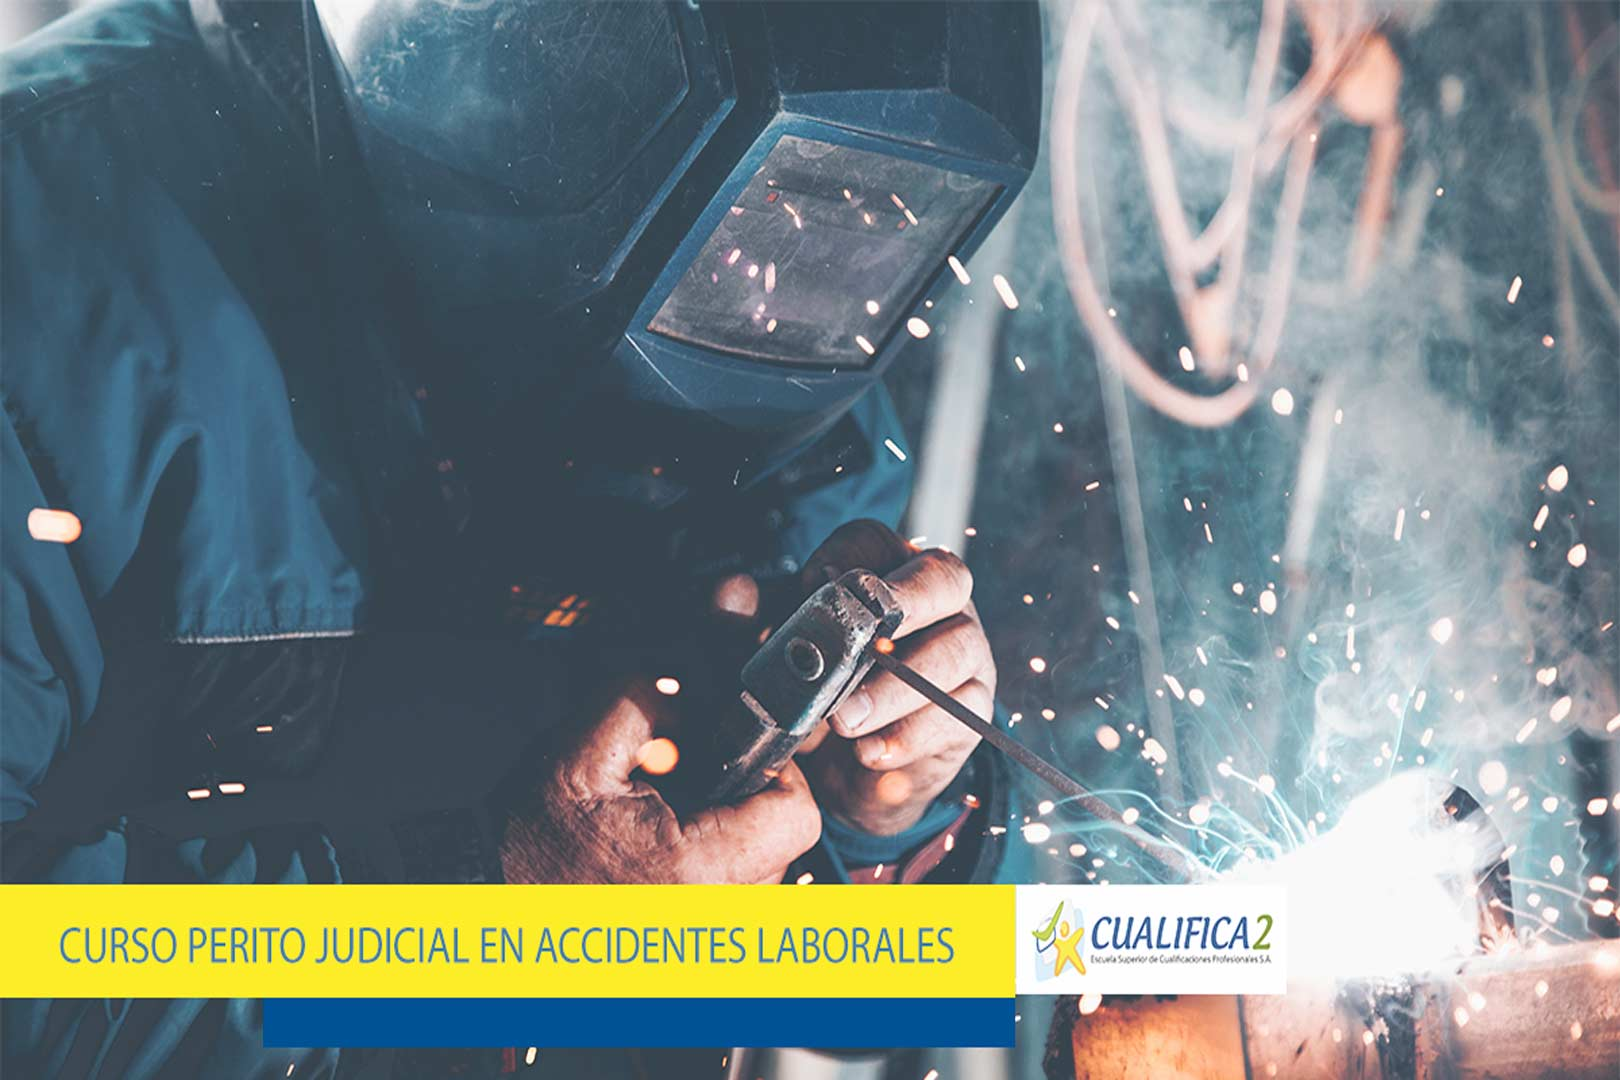 Curso Perito Judicial en Accidentes Laborales